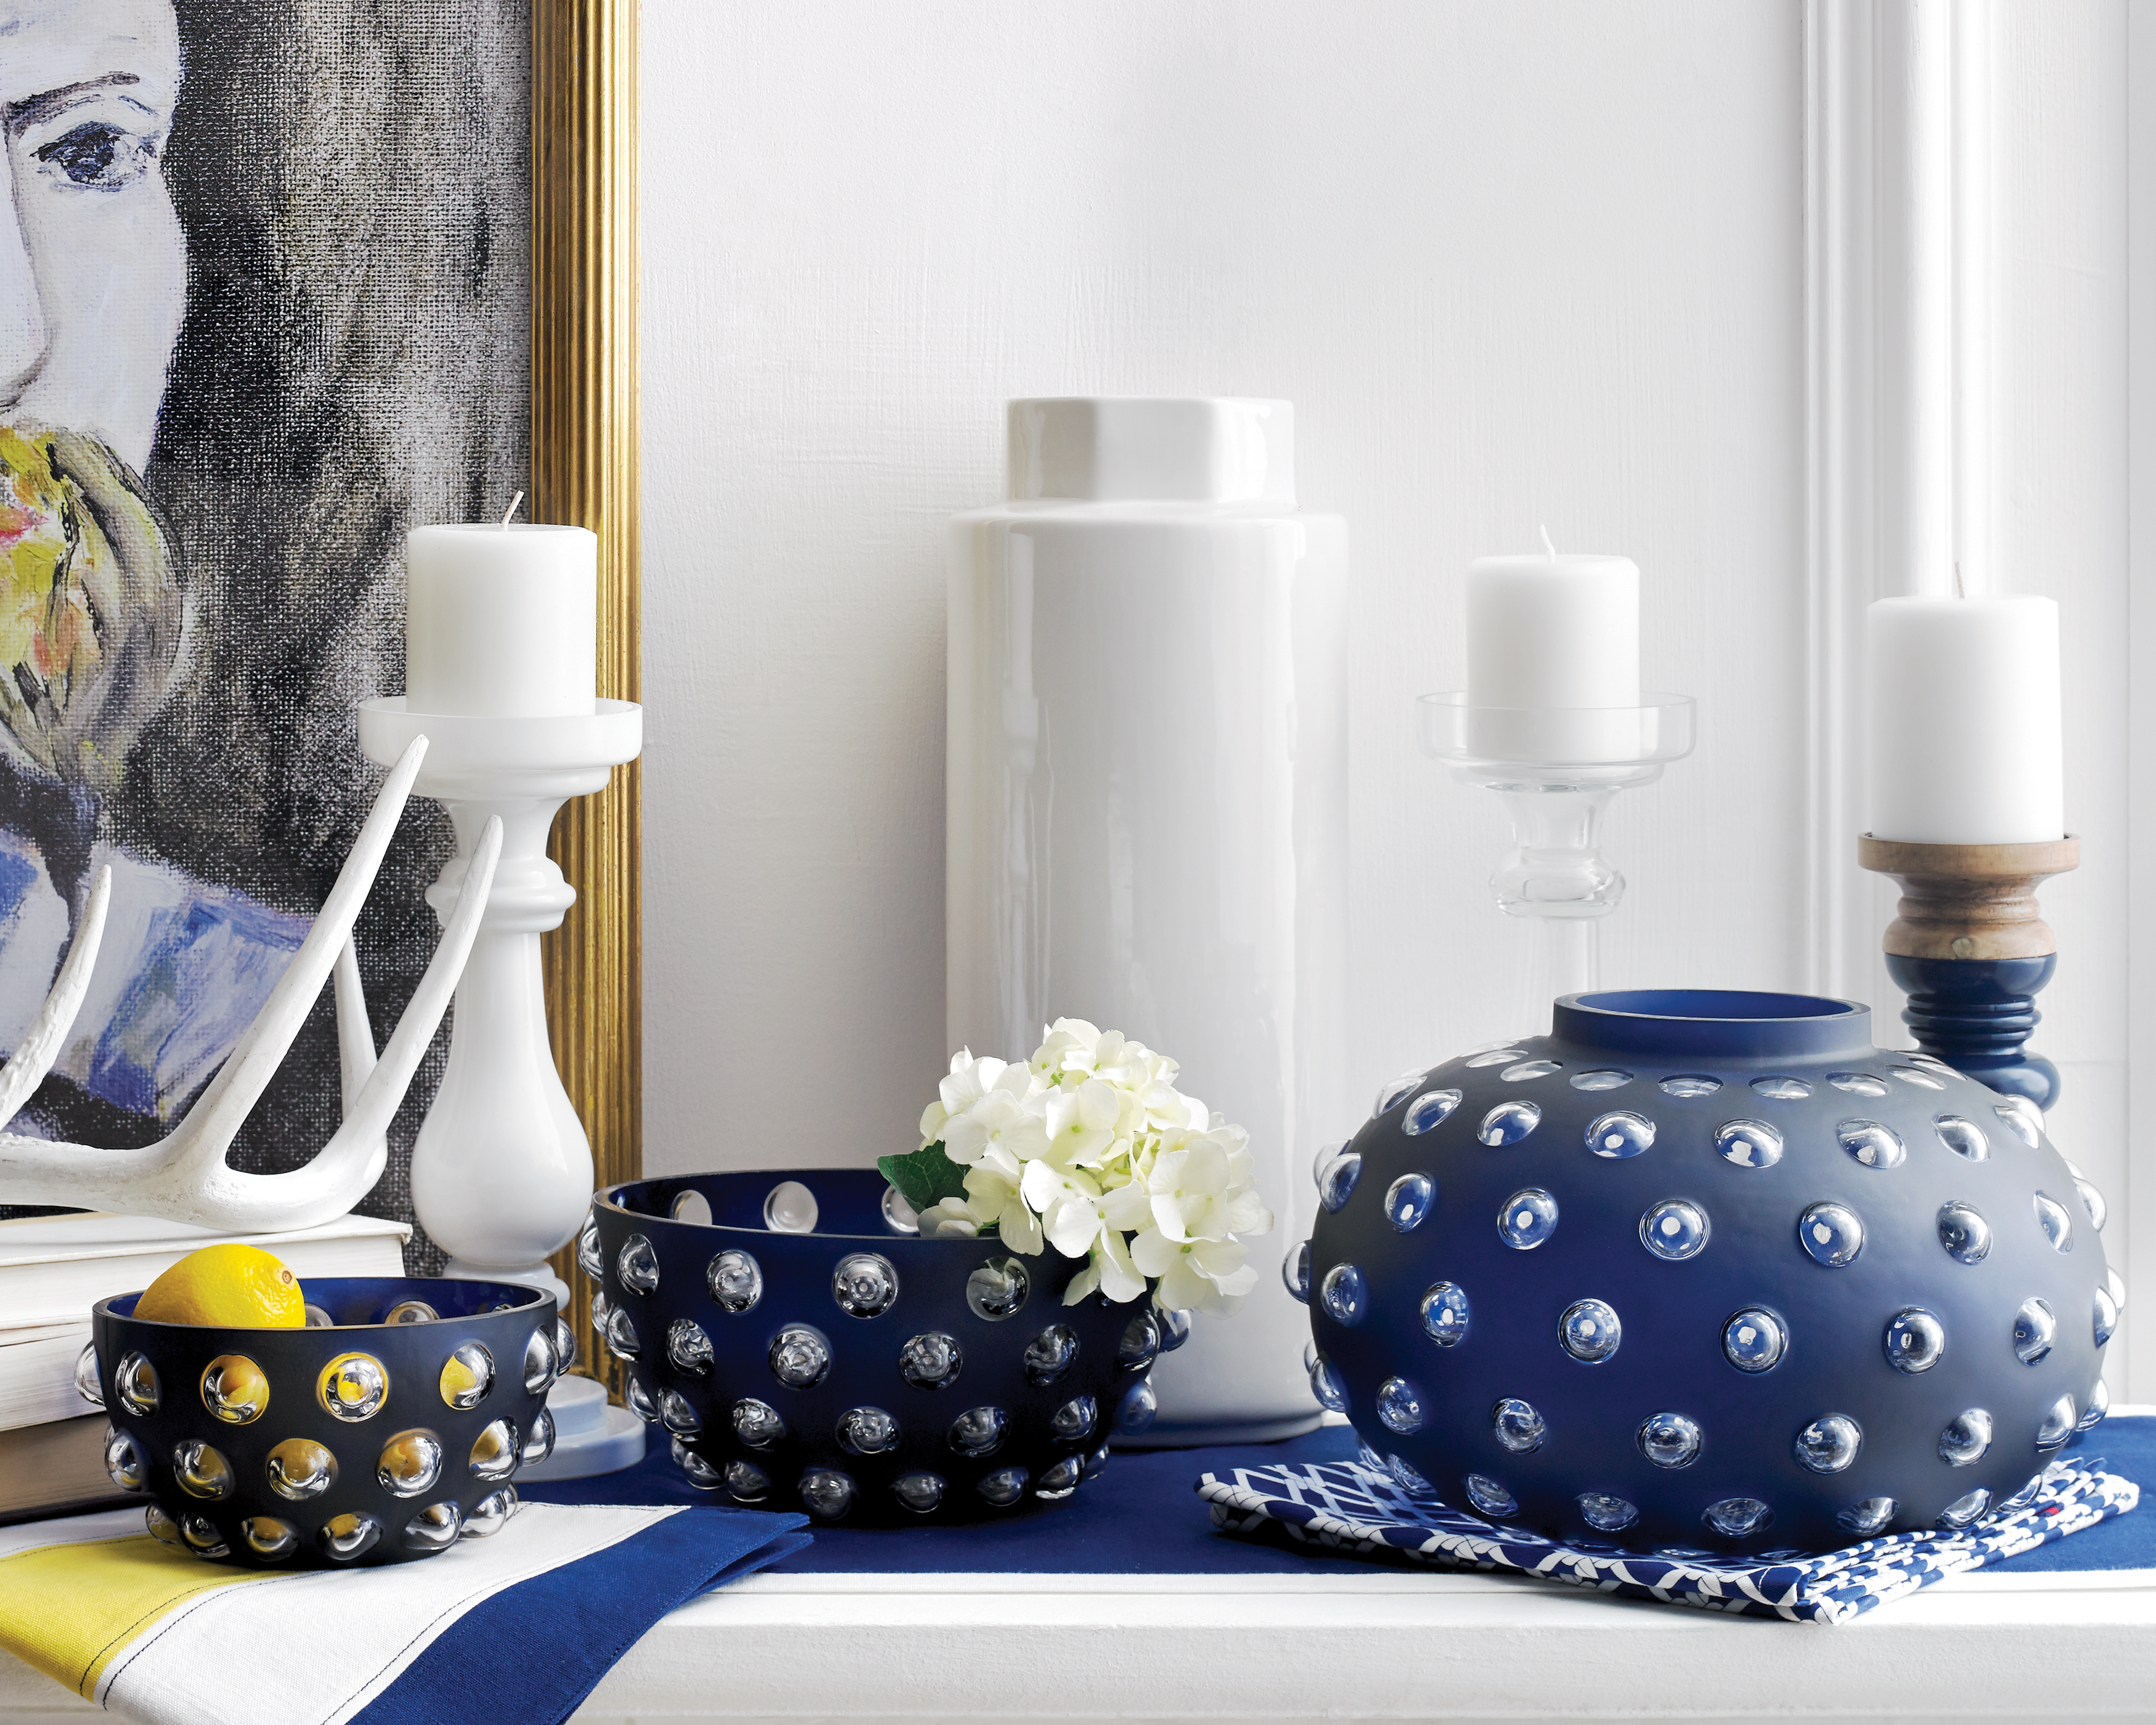 Bon Tommy Hilfiger Announces Expanded Home Collection Through Licensing  Agreement With LF USA | Business Wire